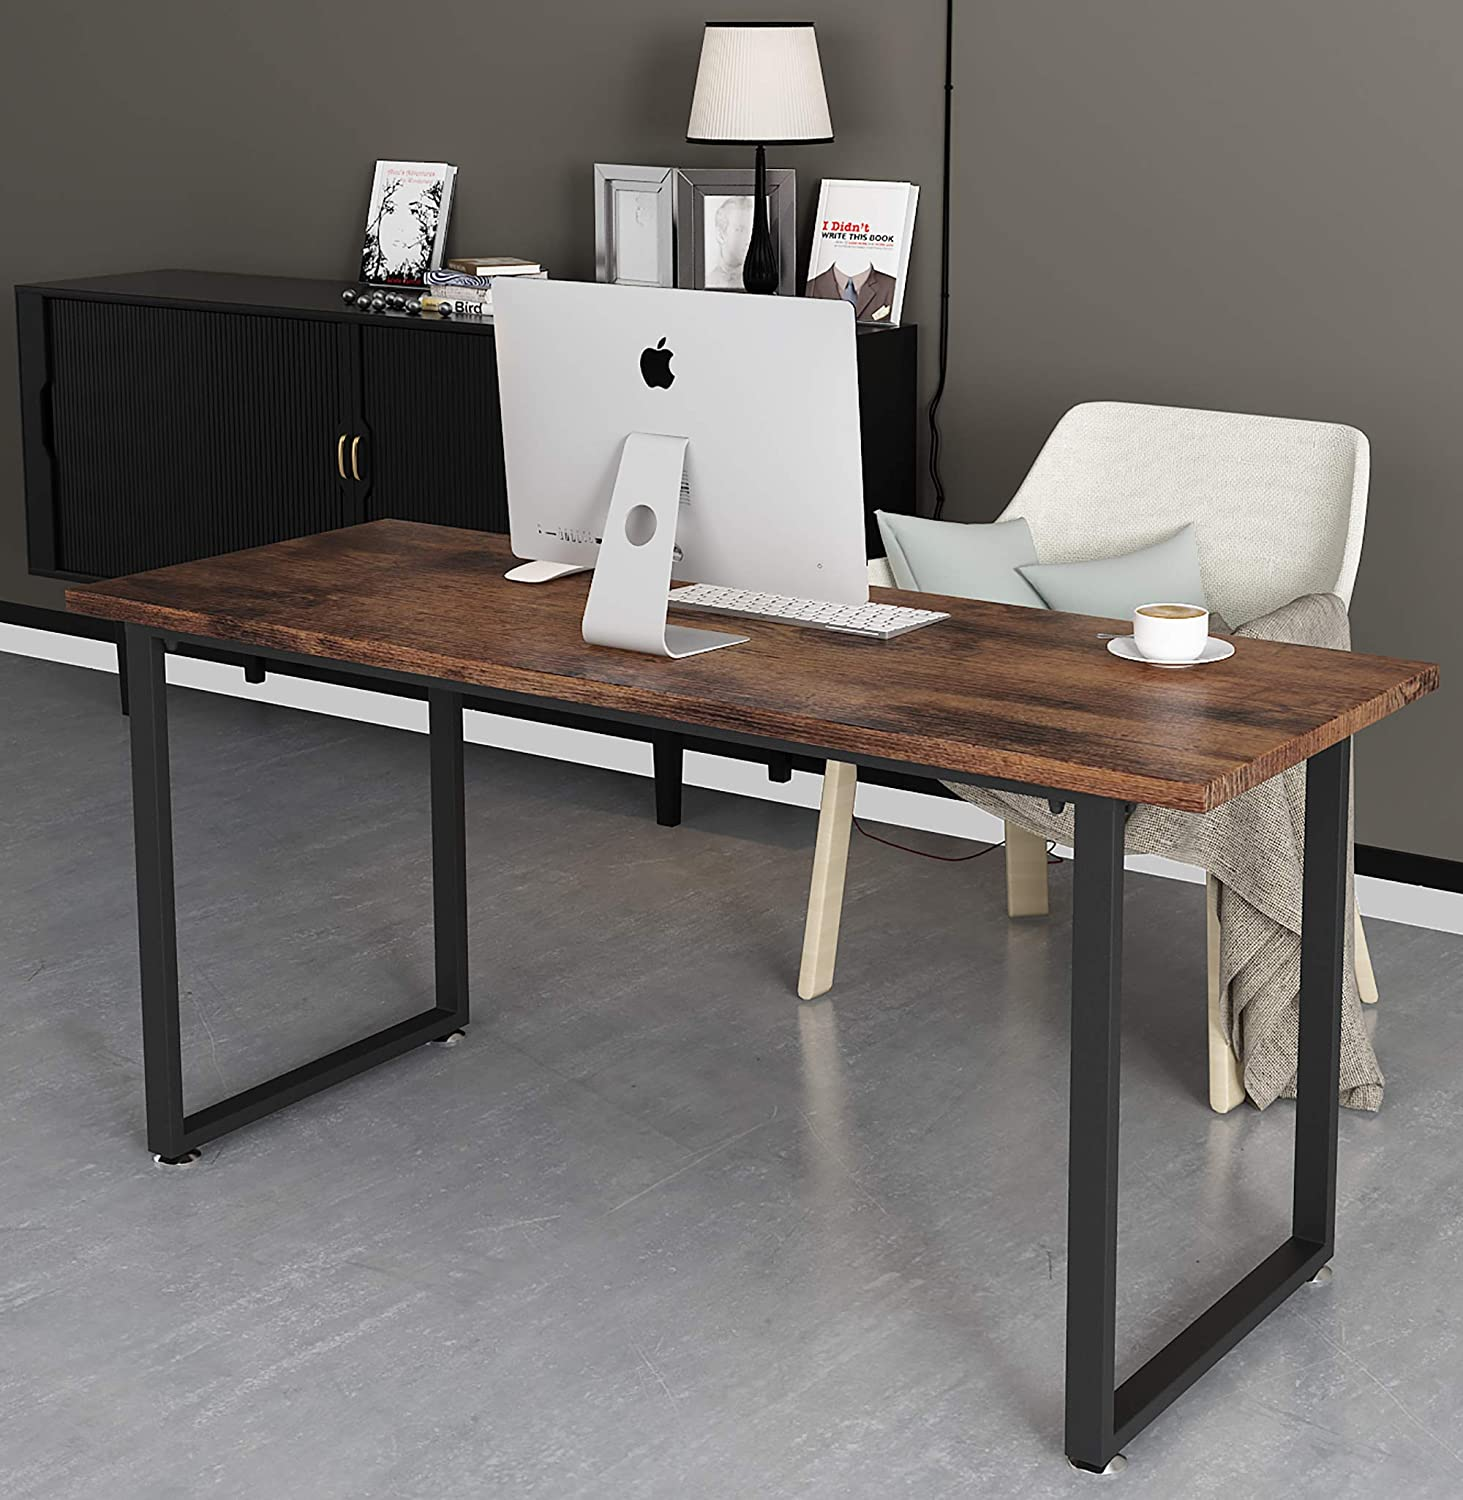 Tayene Computer Desk Study Writing Table for Home Office, Industrial Style PC Desk, Black Metal Frame (47'', Rustic Brown)